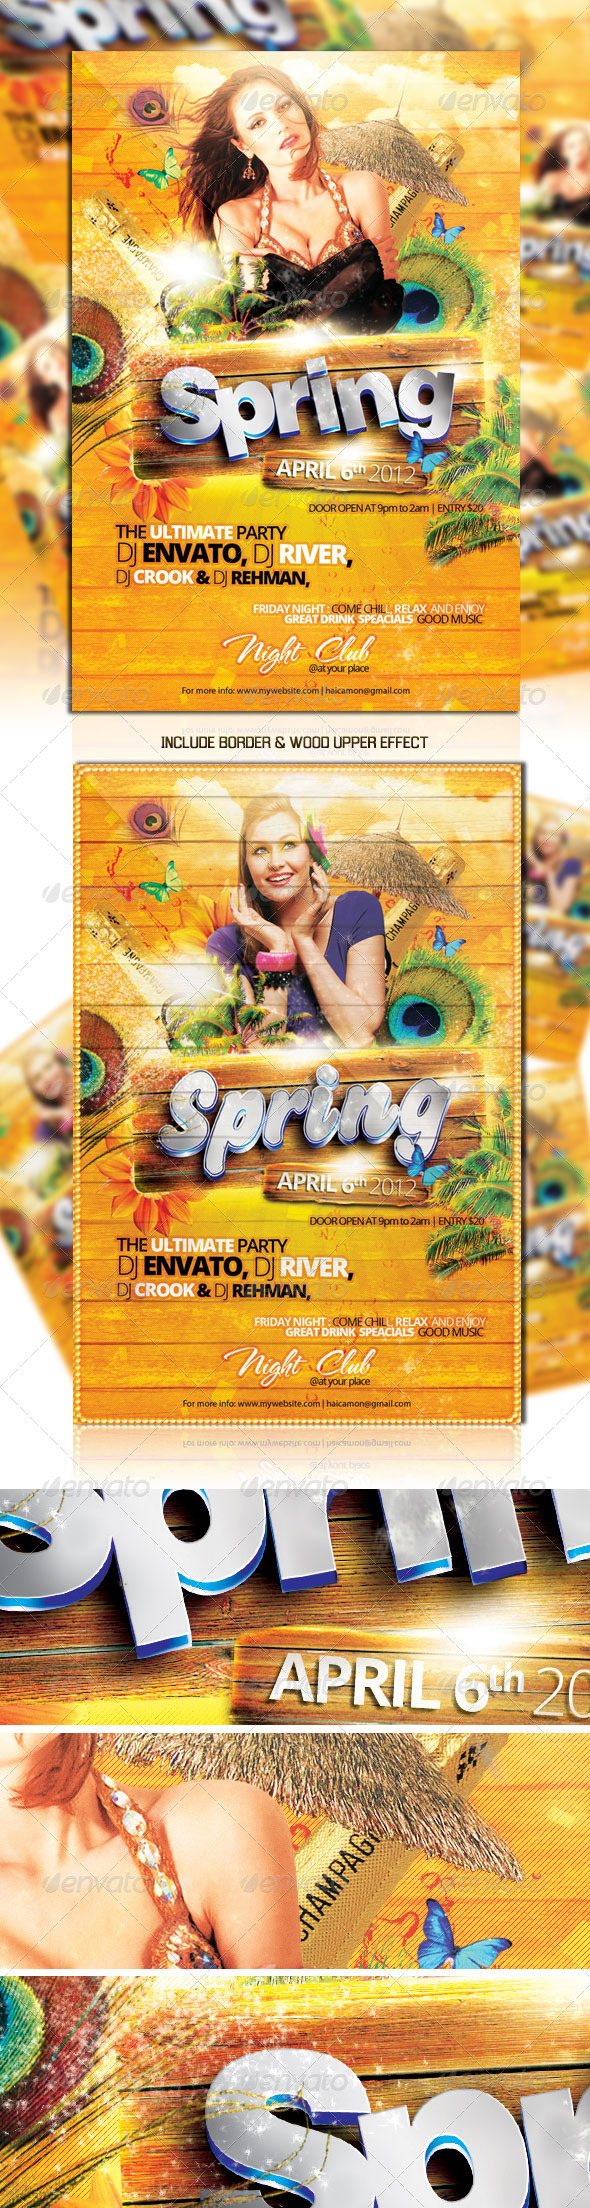 Spring Party Flyer Vol_1 - Clubs & Parties Events